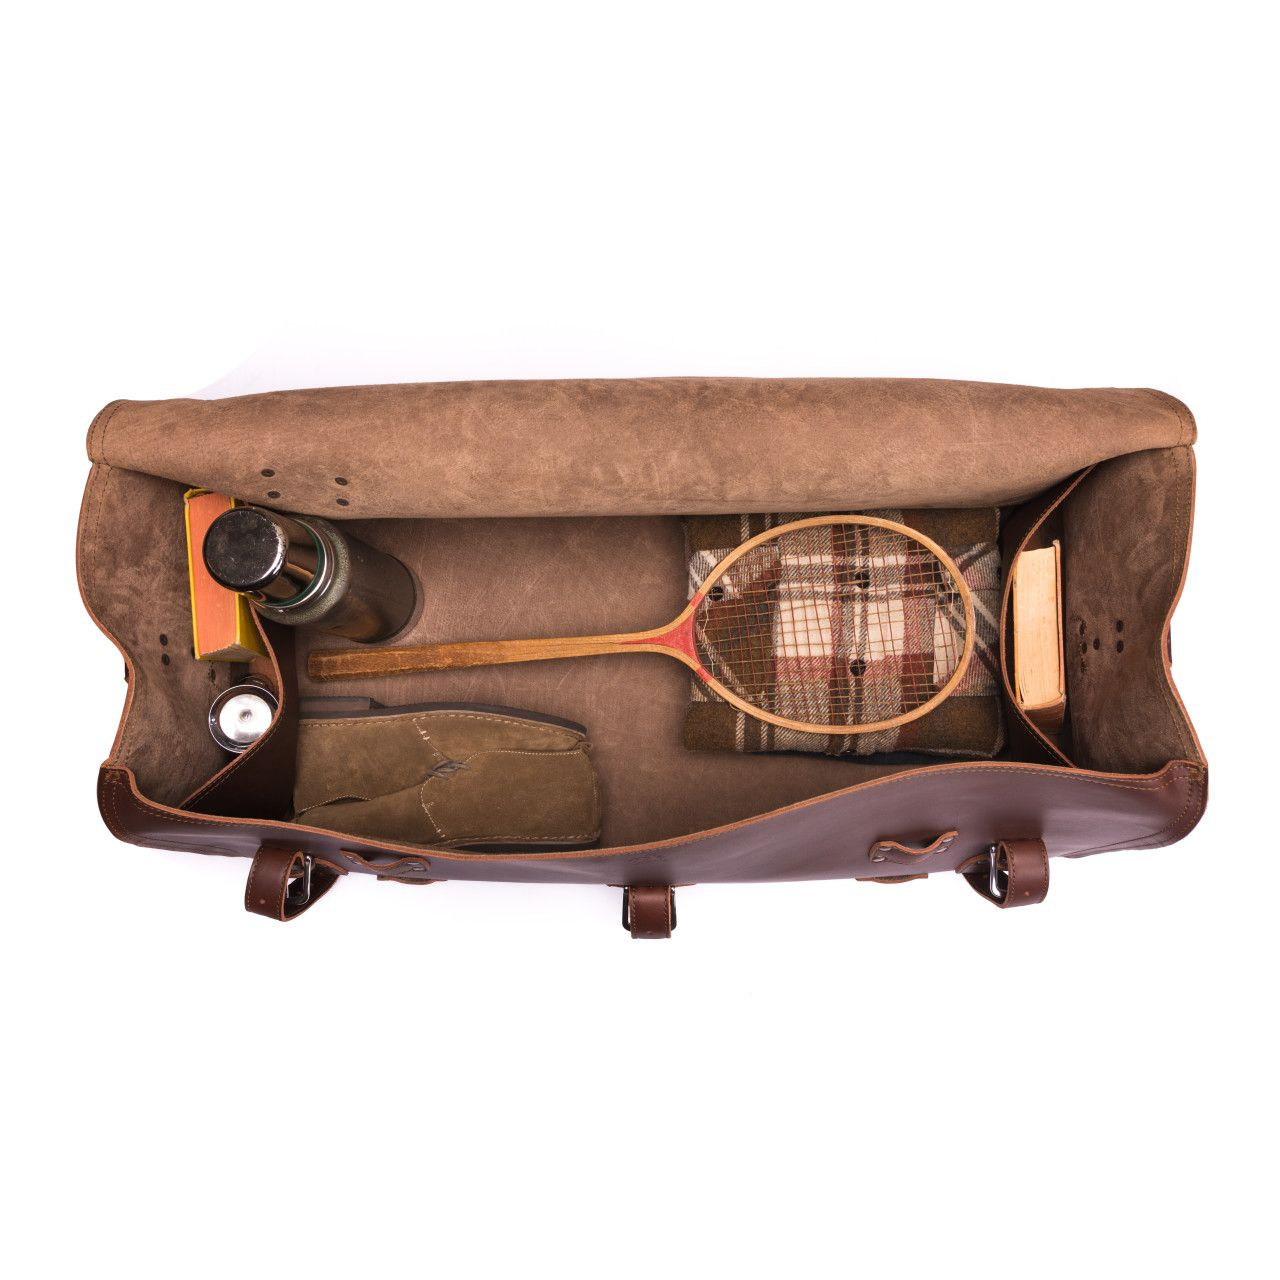 large leather duffel bag in chestnut leather with shoes, books, badminton racket, thermos in the interior